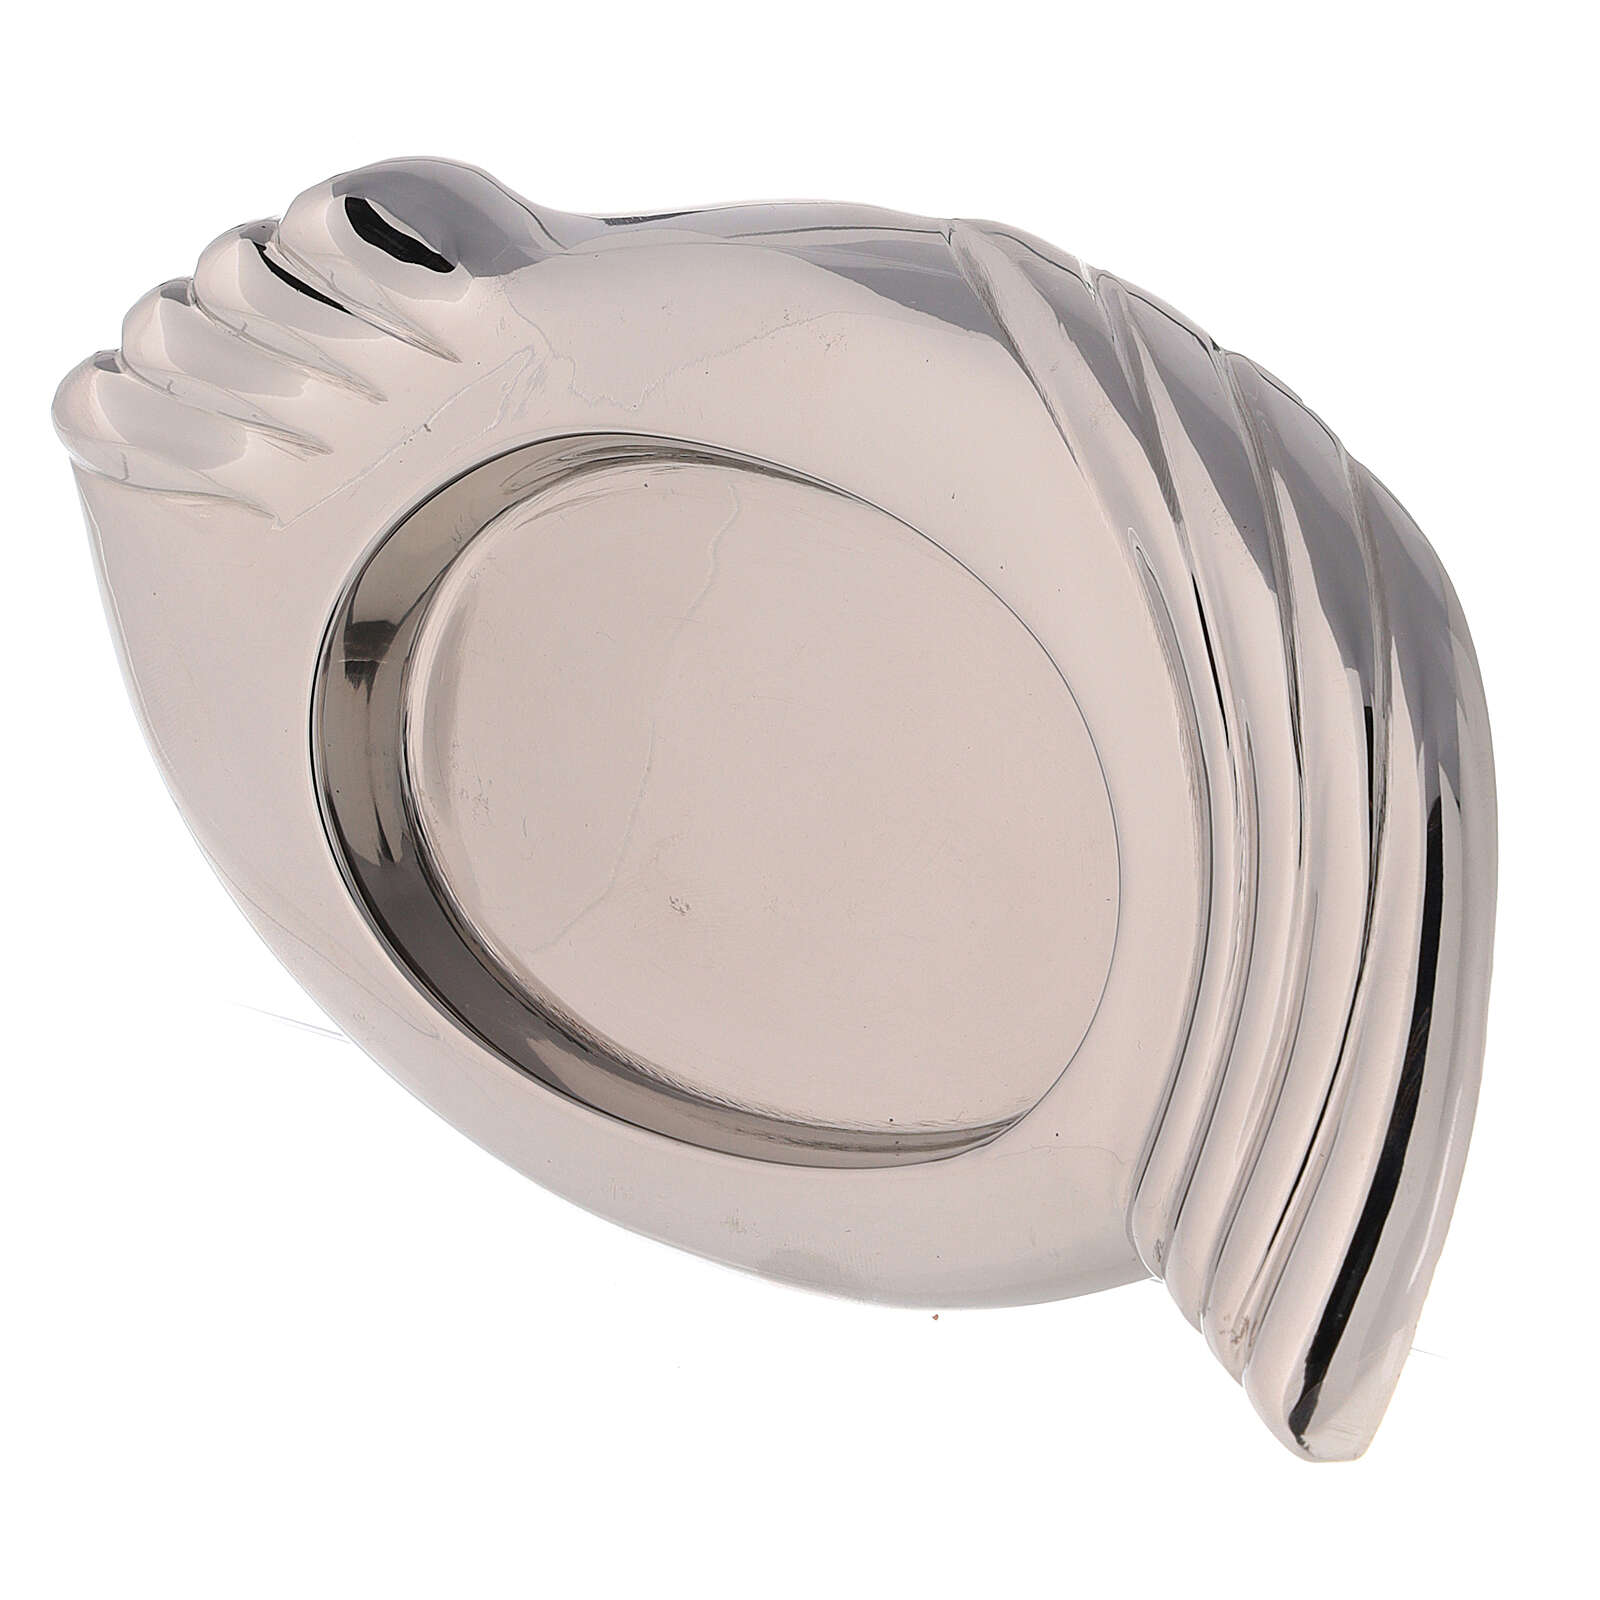 Nickel-plated brass candle holder plate wings 3 1/4x2 1/4 in 3